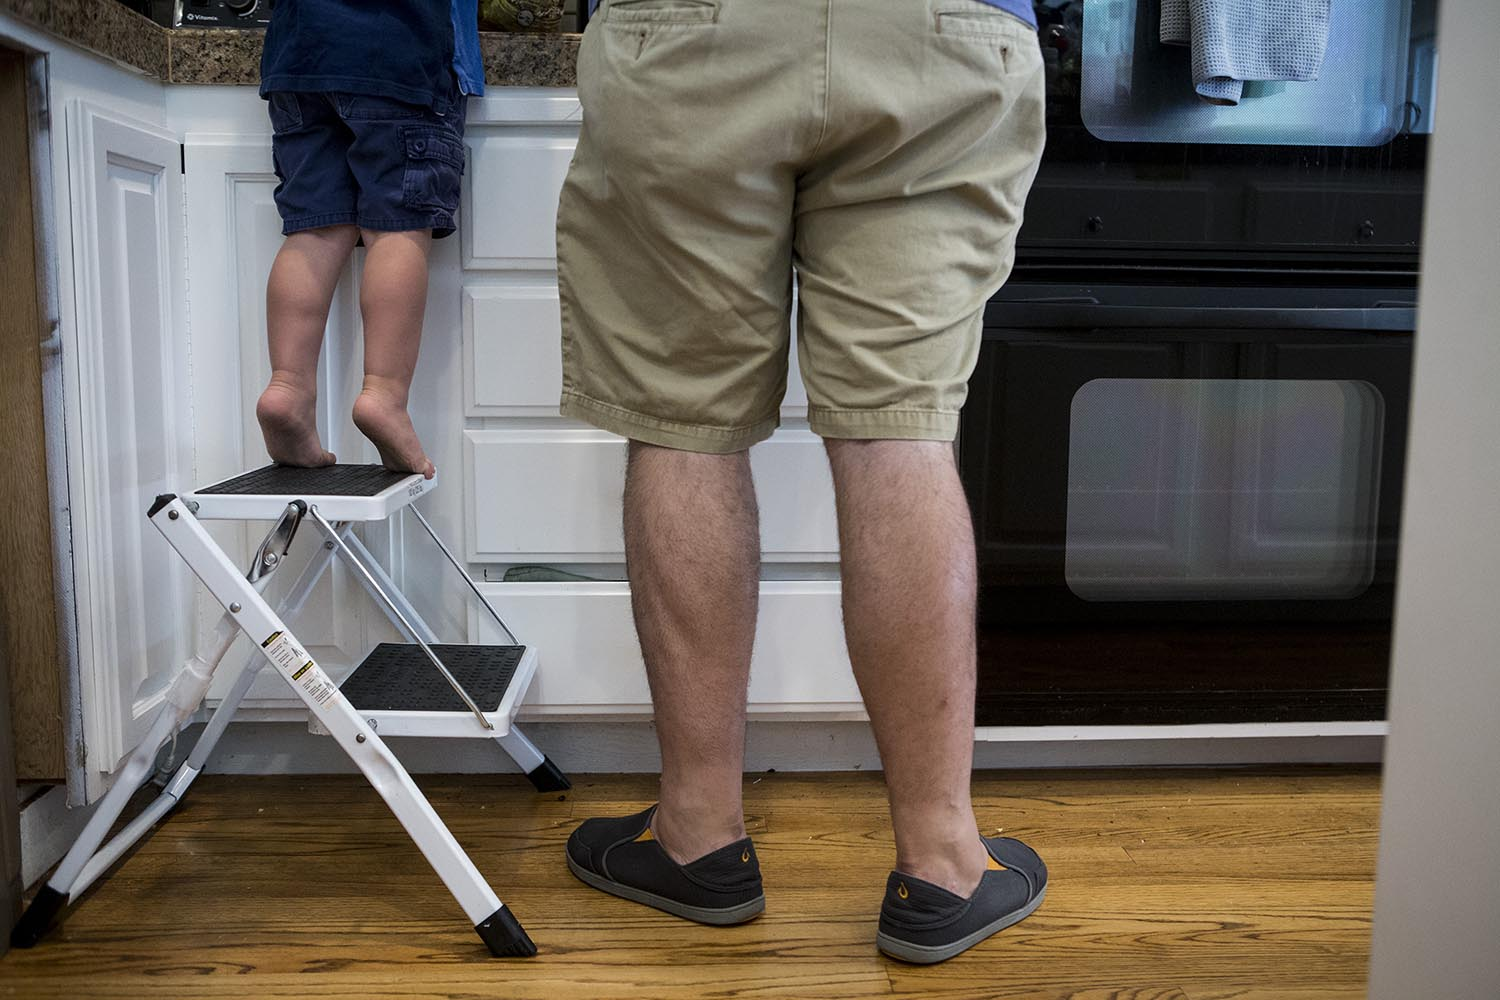 Candid father and son moment, picture of father and son's legs in the kitchen in Belmont MA the son is on tip toes on a stool